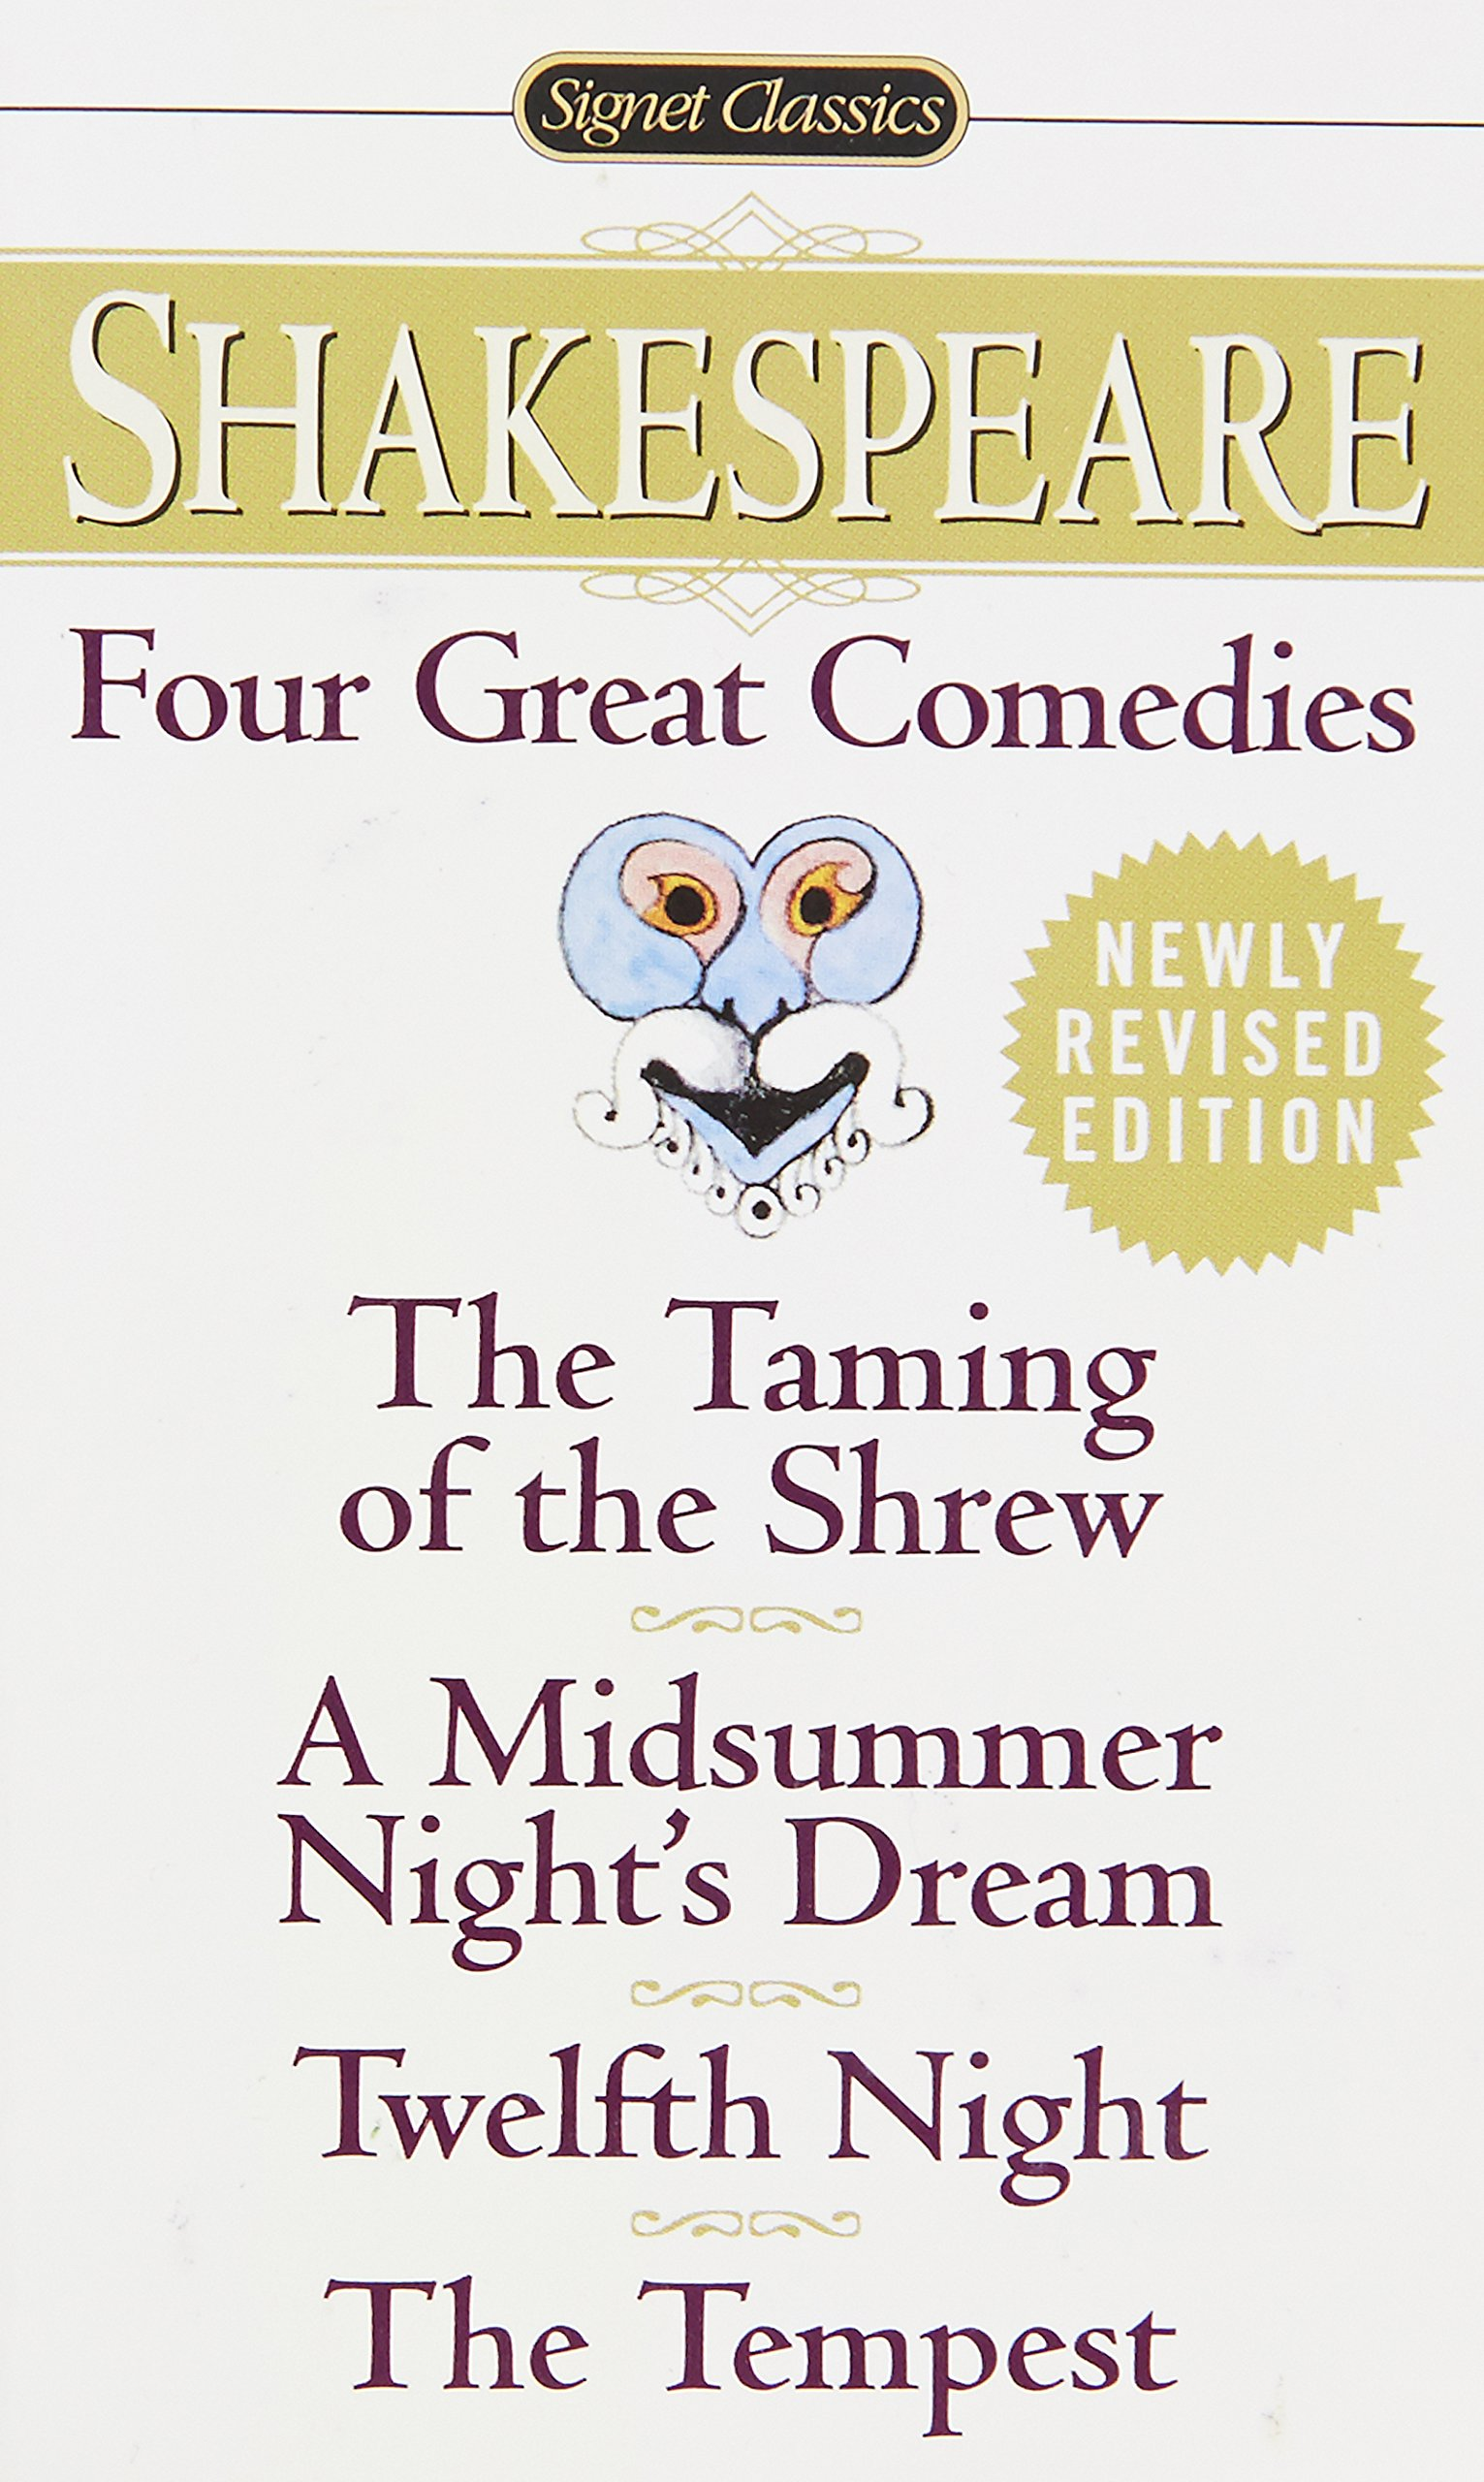 amazon com four great comedies the taming of the shrew a amazon com four great comedies the taming of the shrew a midsummer night s dream twelfth night the tempest signet classics 9780451527318 william